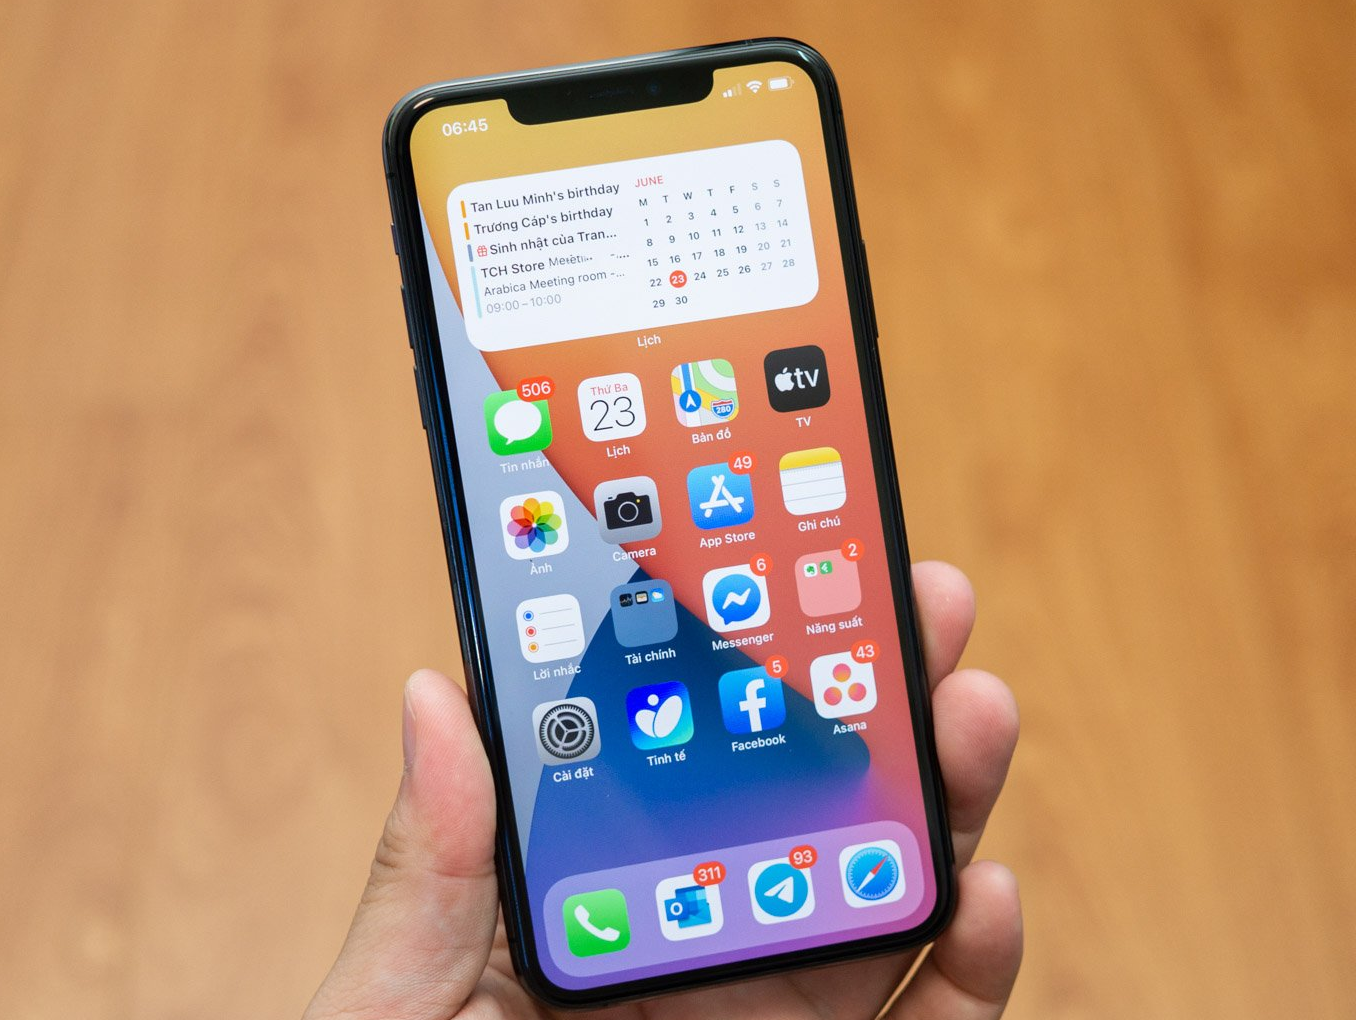 What's old is new again: new iOS 14 features that were first seen on Android